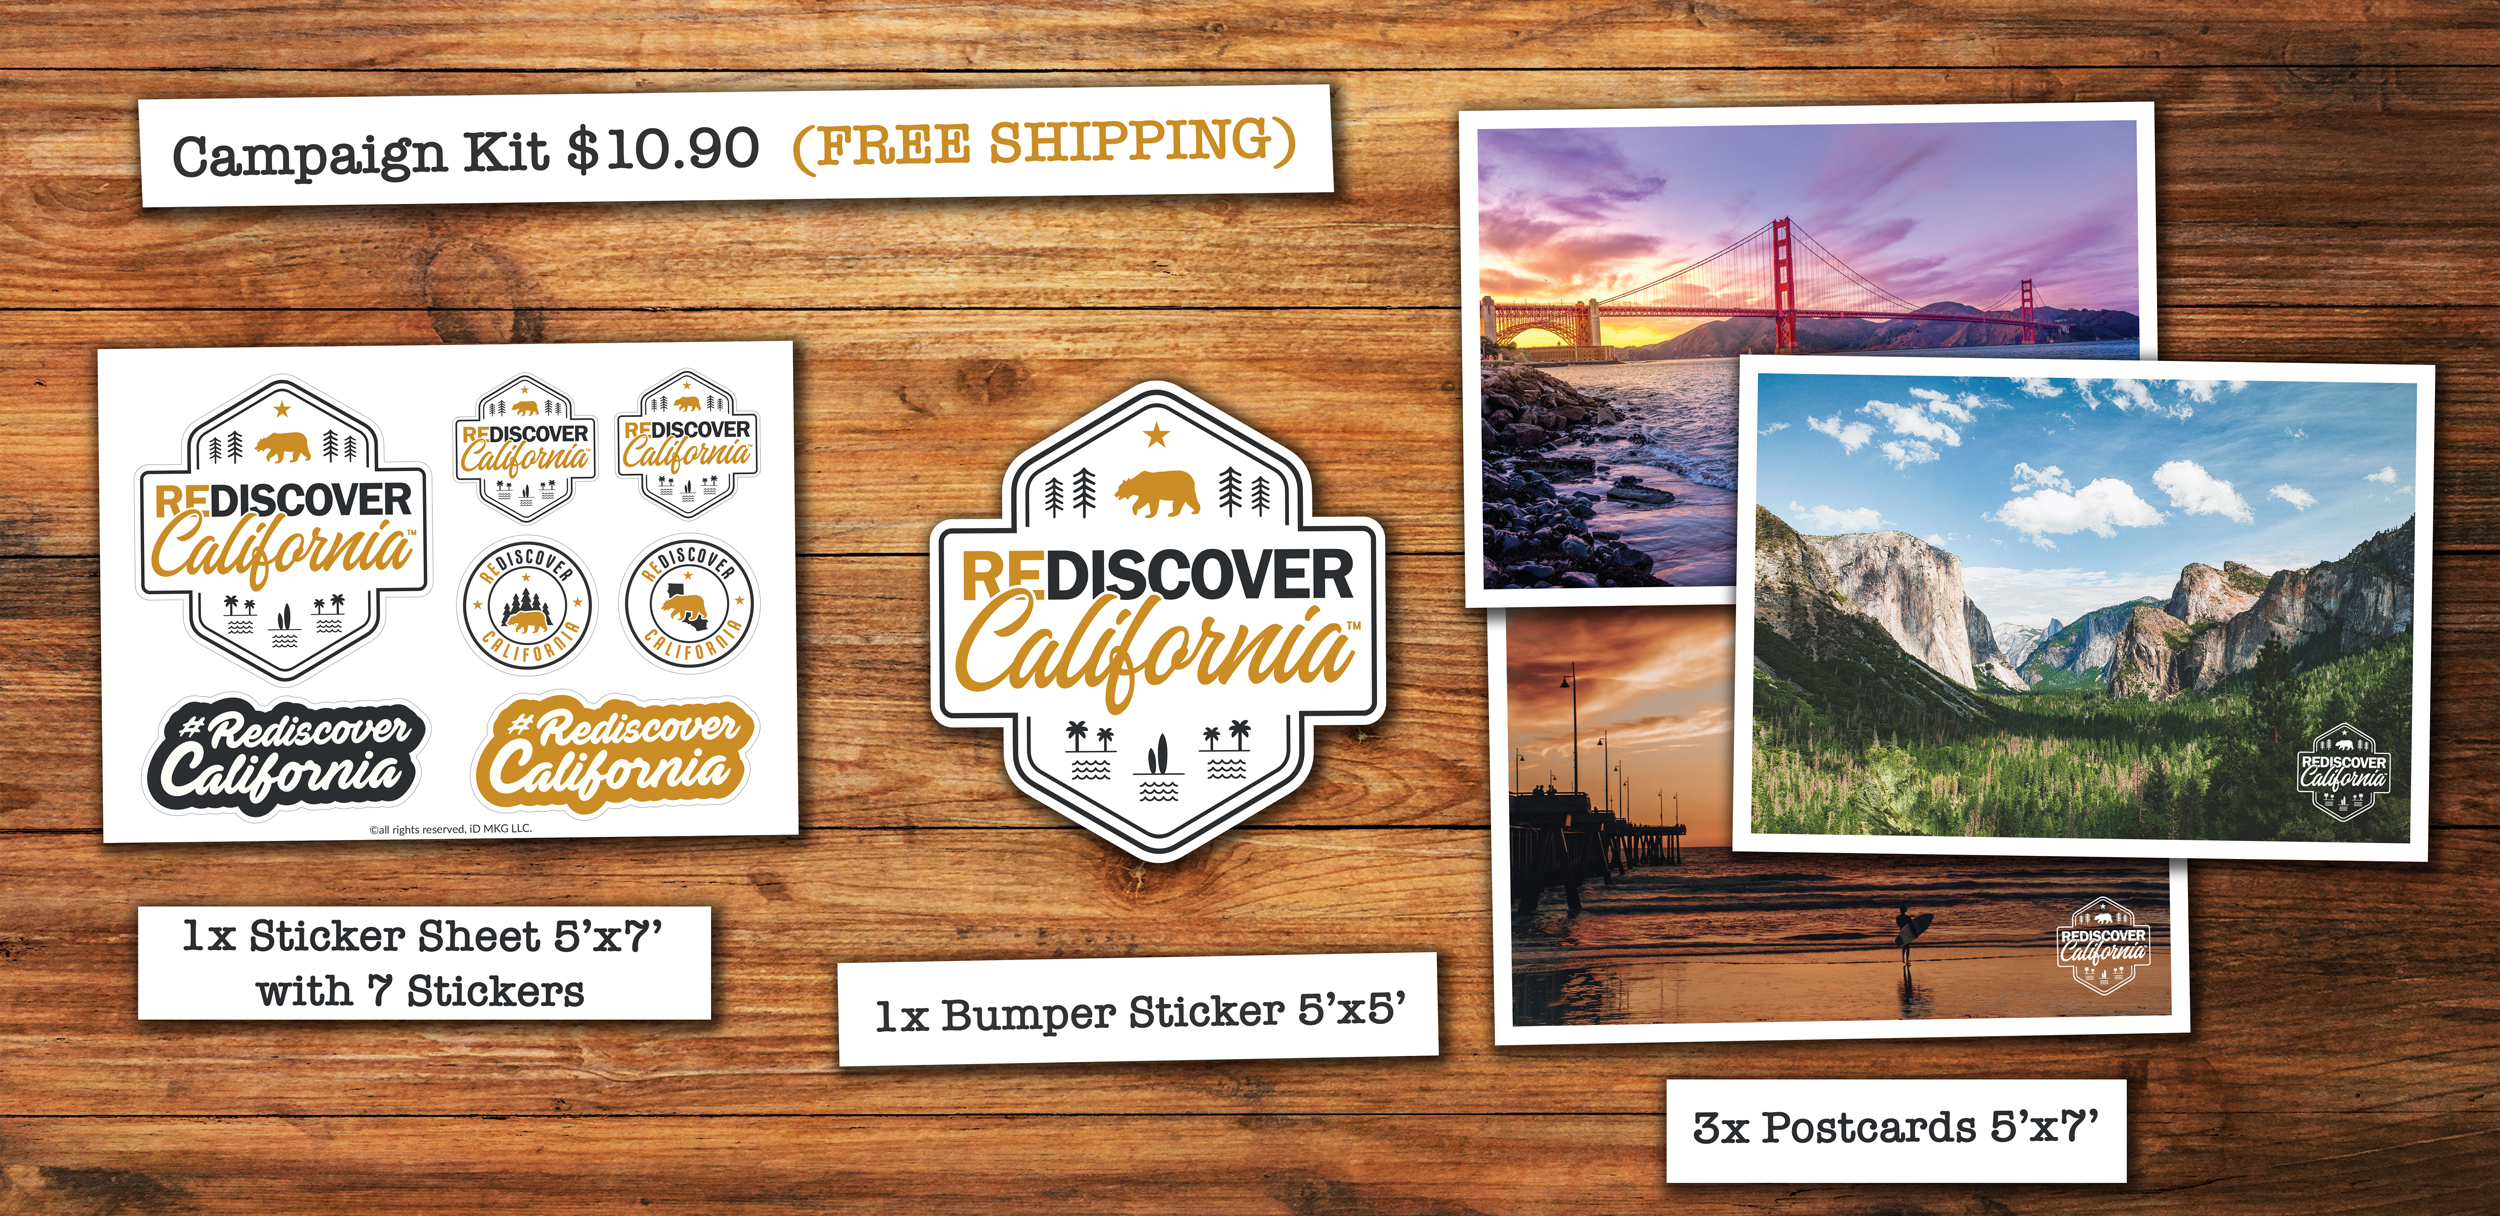 Rediscover California Support Kit